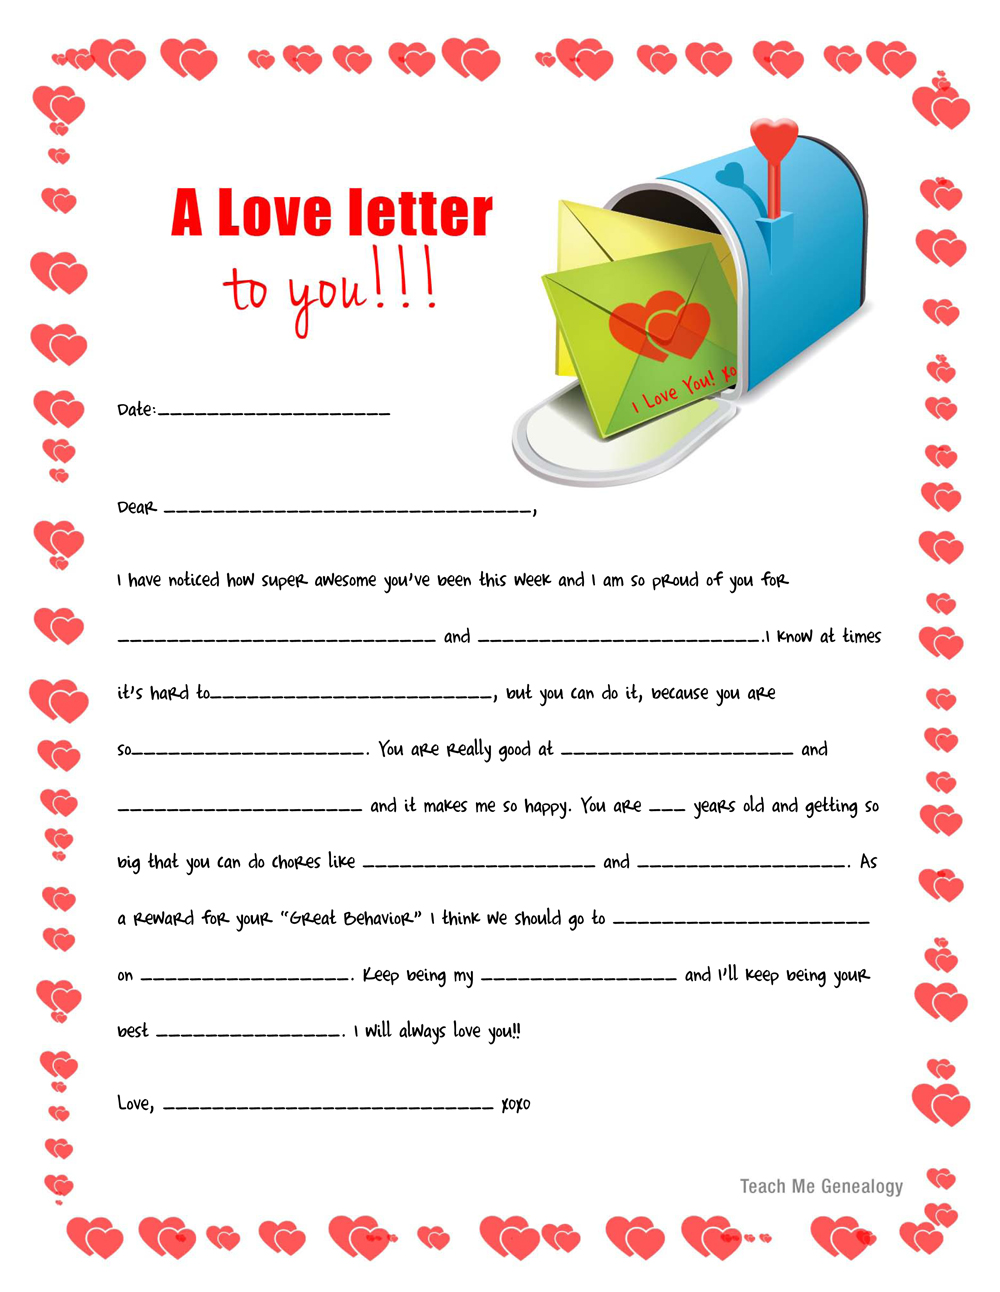 ... Love-Letters for your Kids. Free Printable ~ Teach Me Genealogy